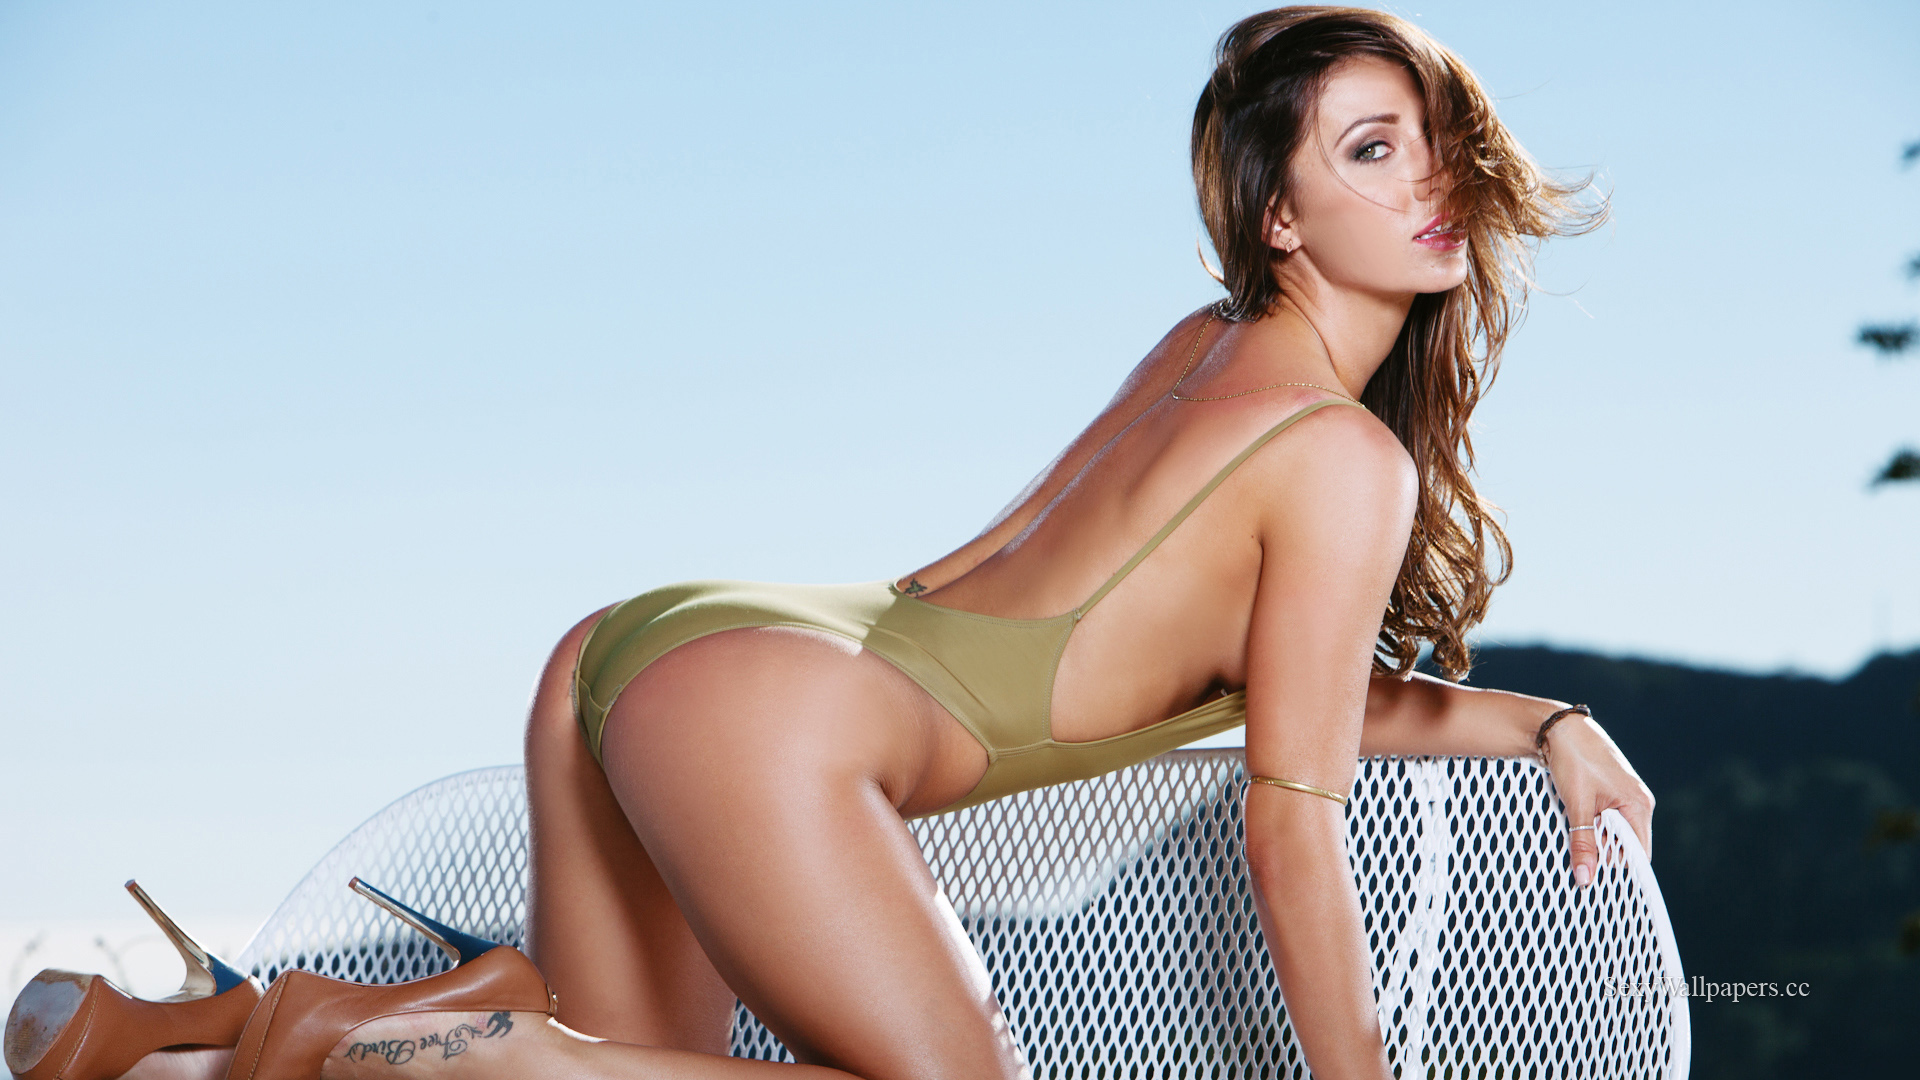 Casey Connelly sexy wallpaper 1920x1080 HD